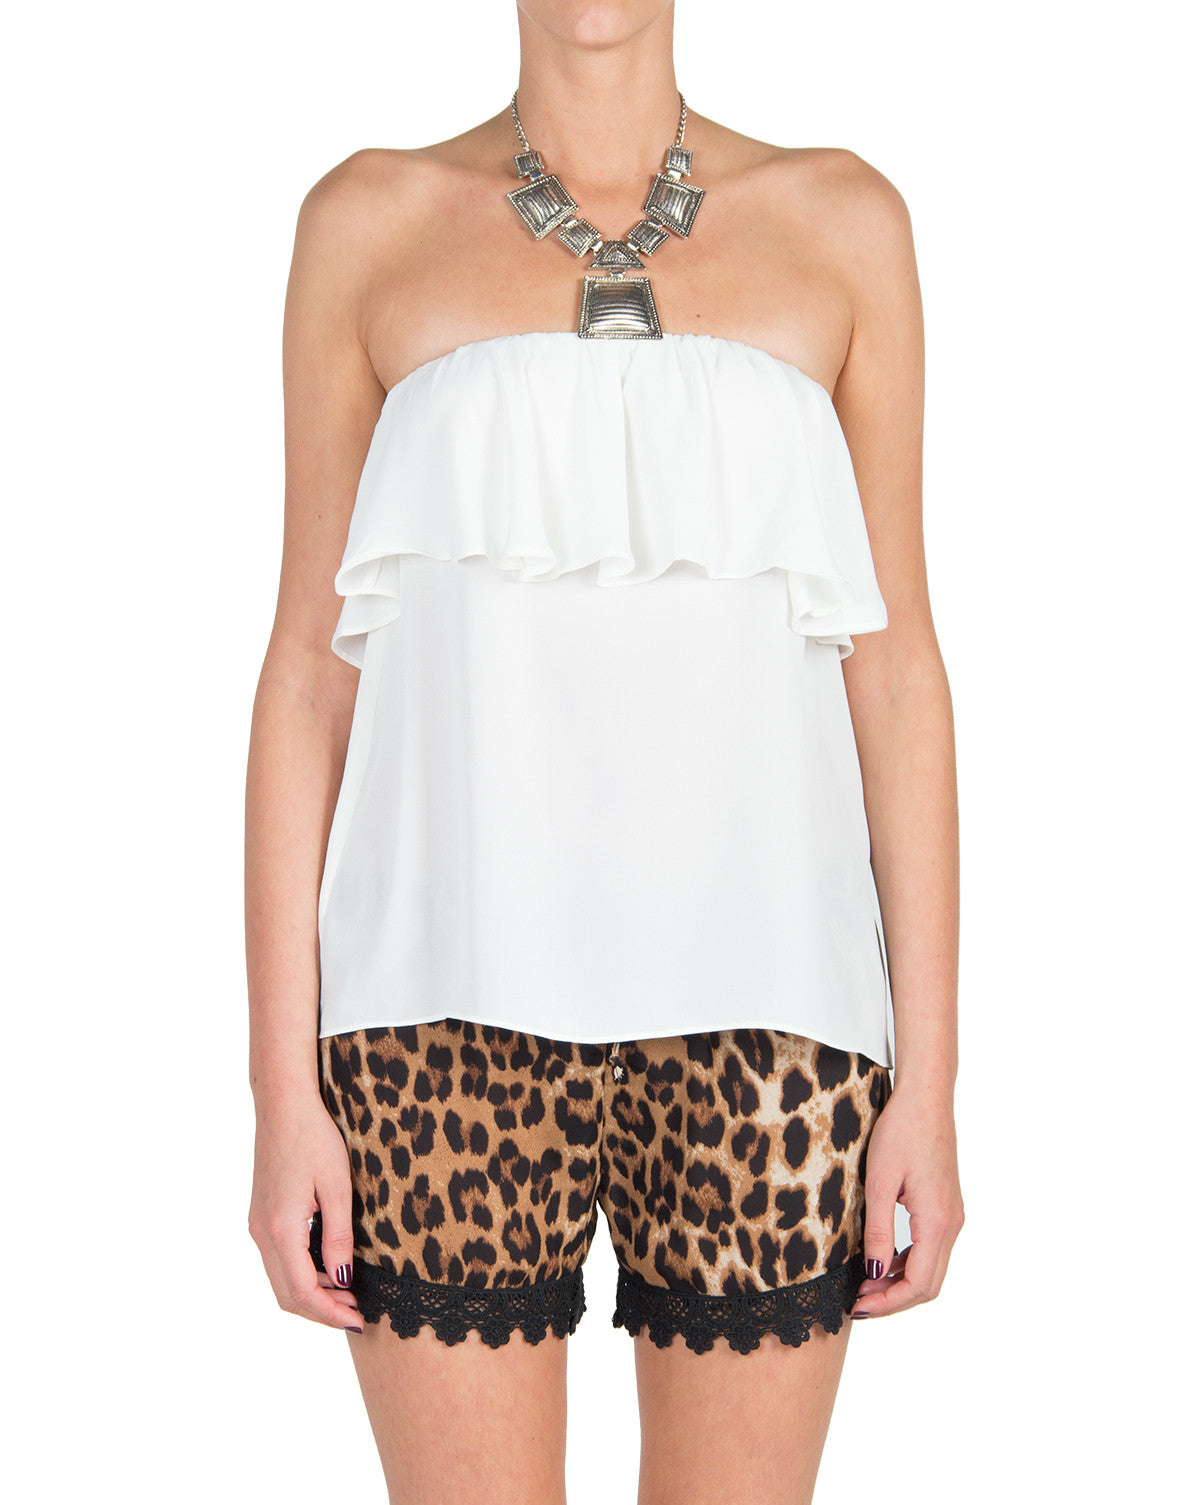 Ruffle Strapless Top - Cream - Large